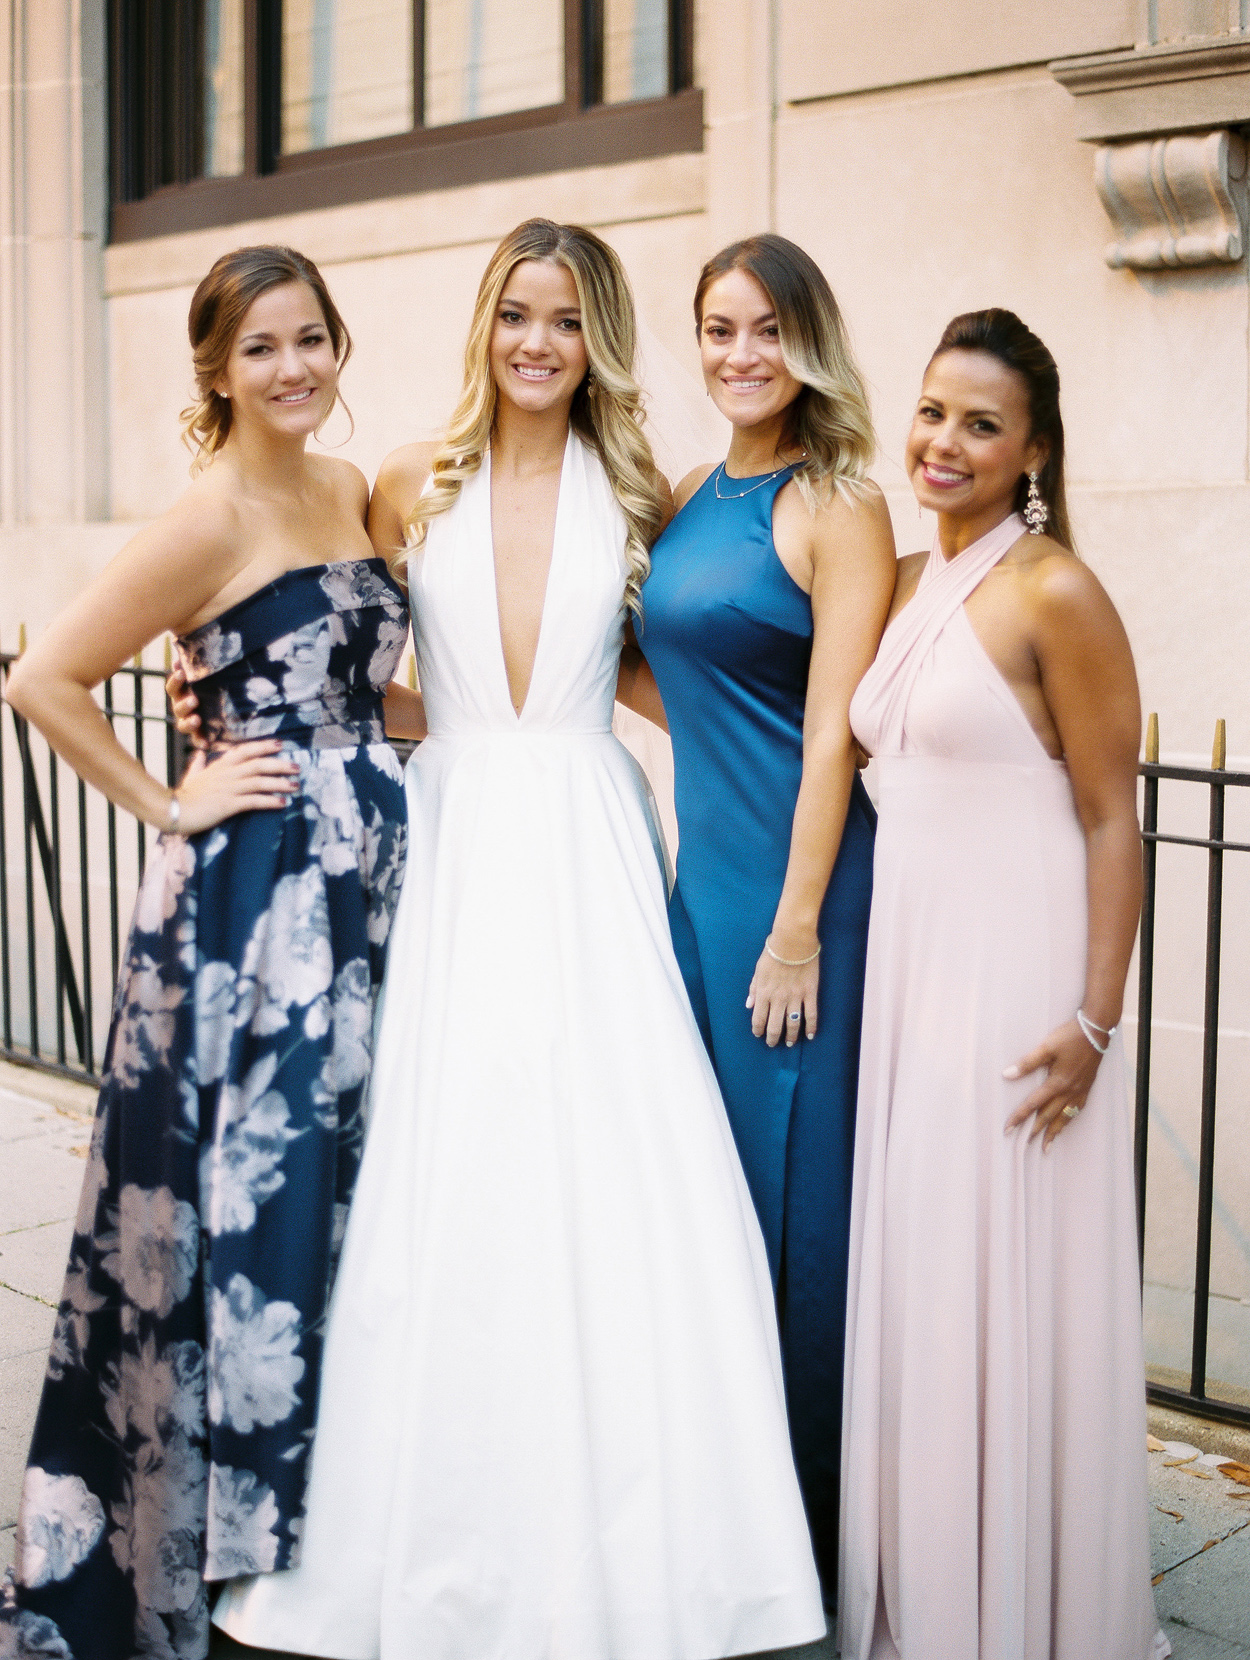 how to save money for wedding season, how to save money when all your friends are getting married